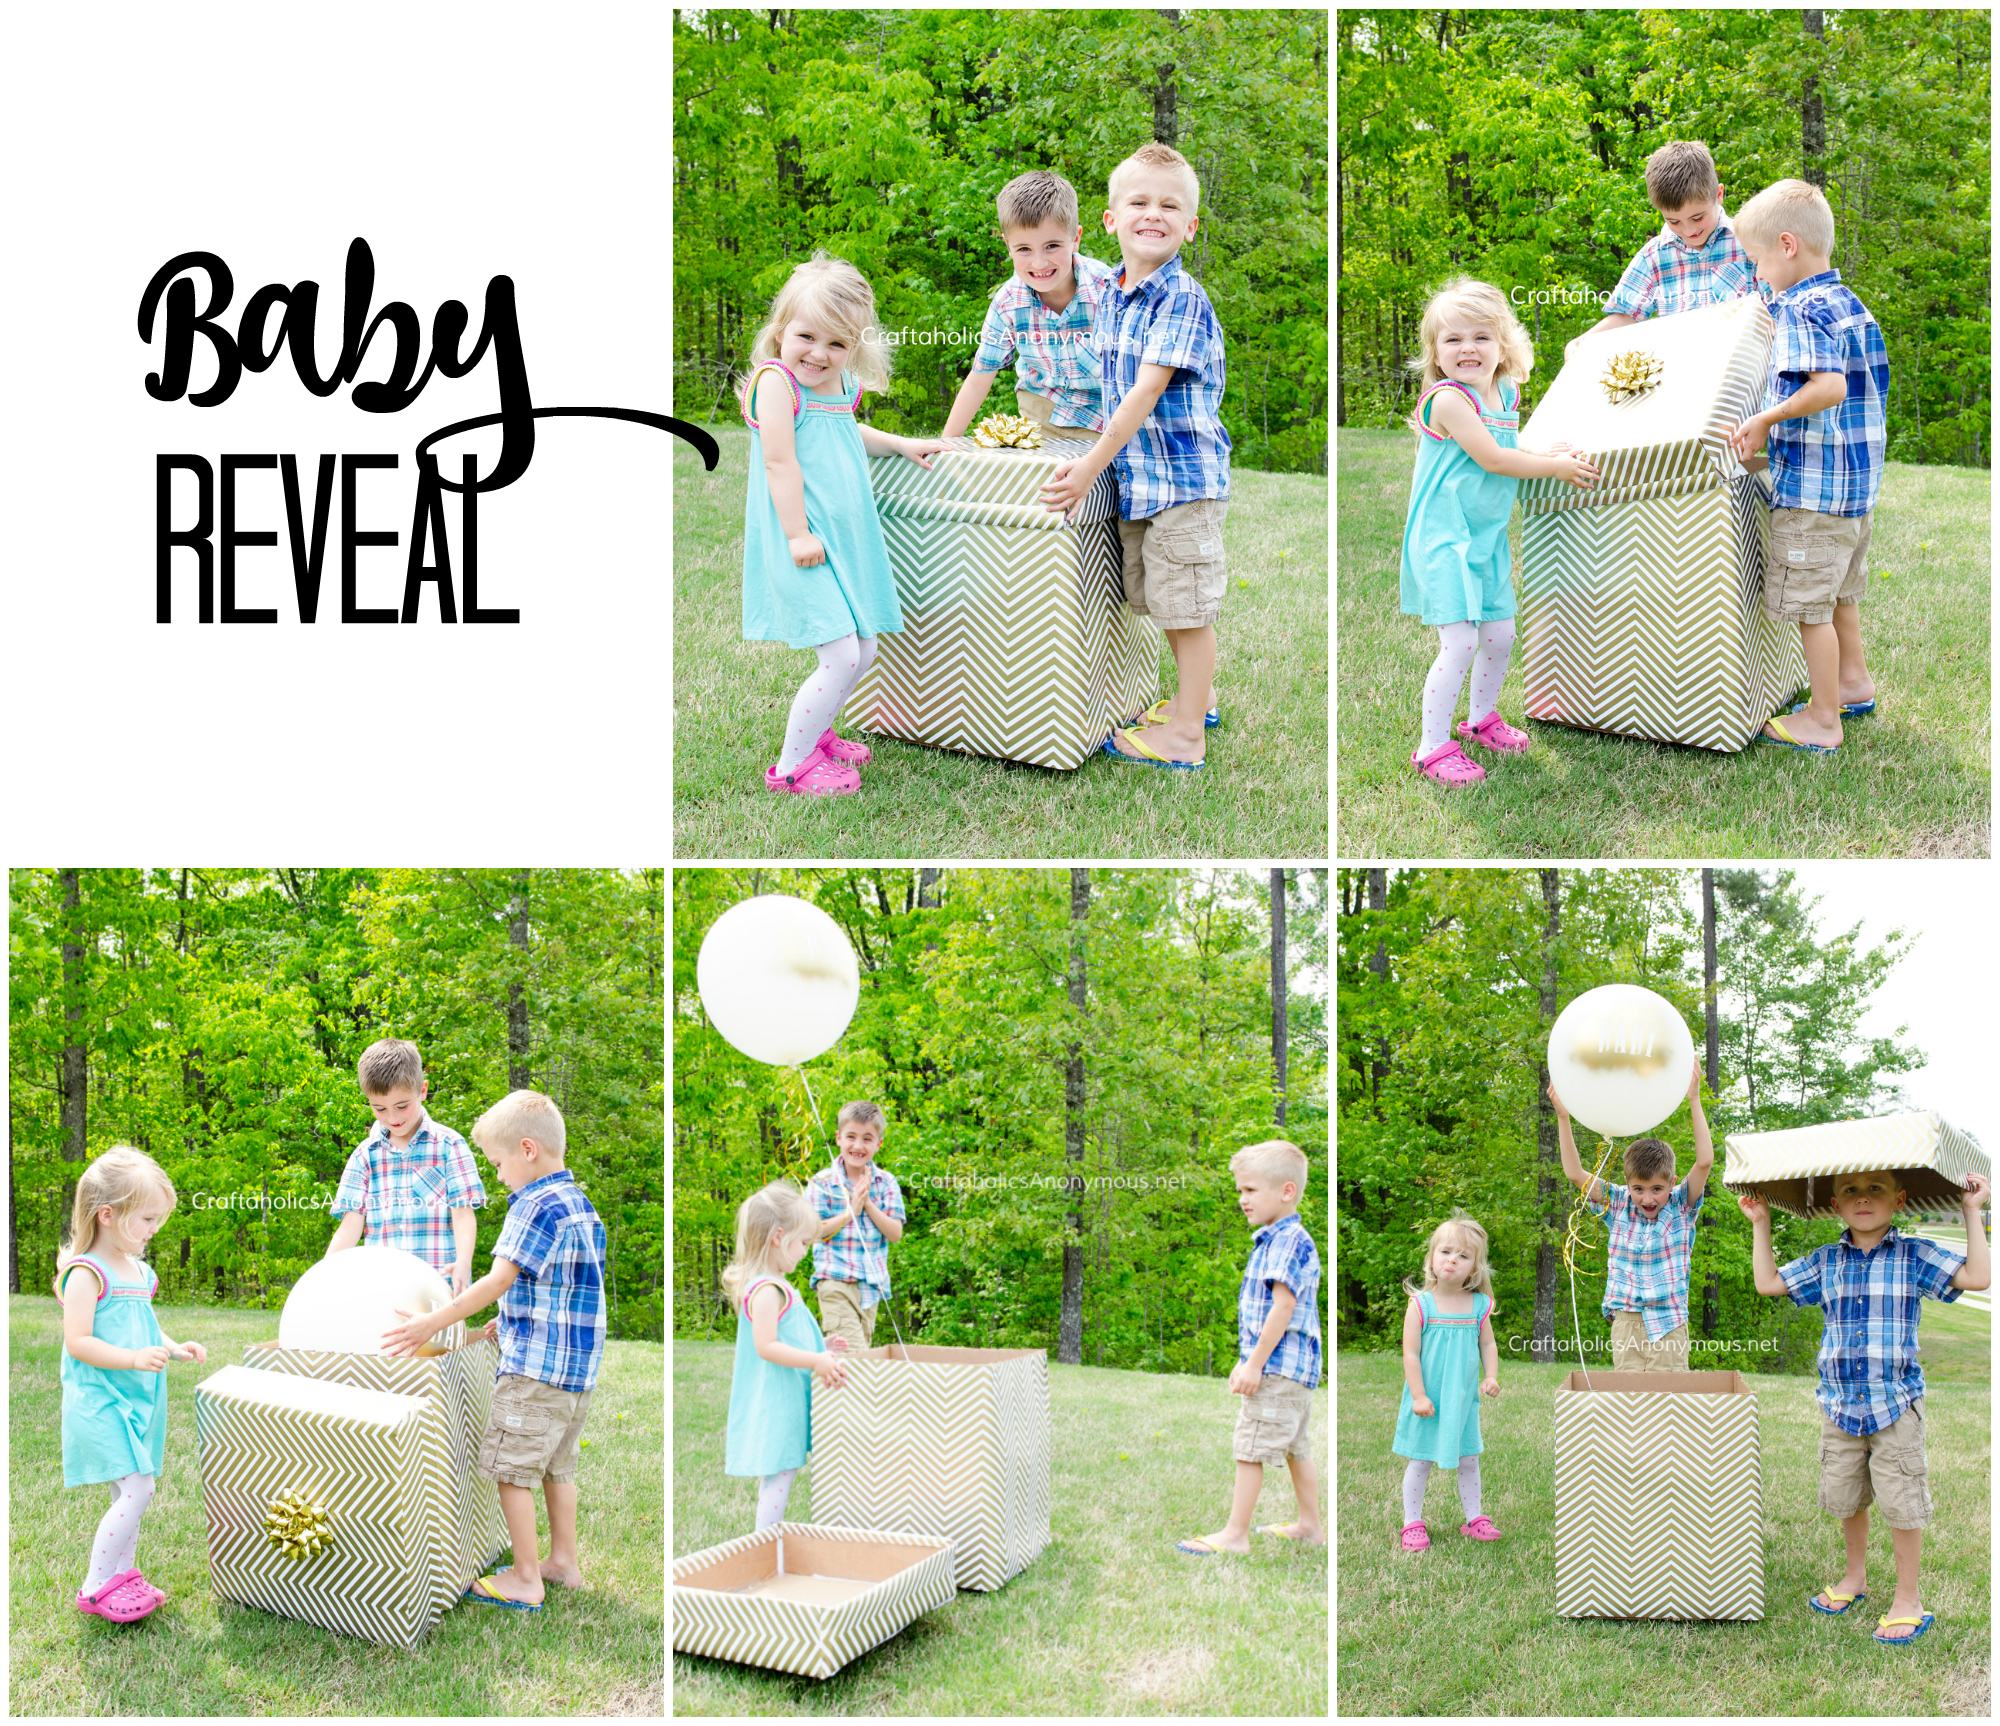 Baby Reveal Announcement idea